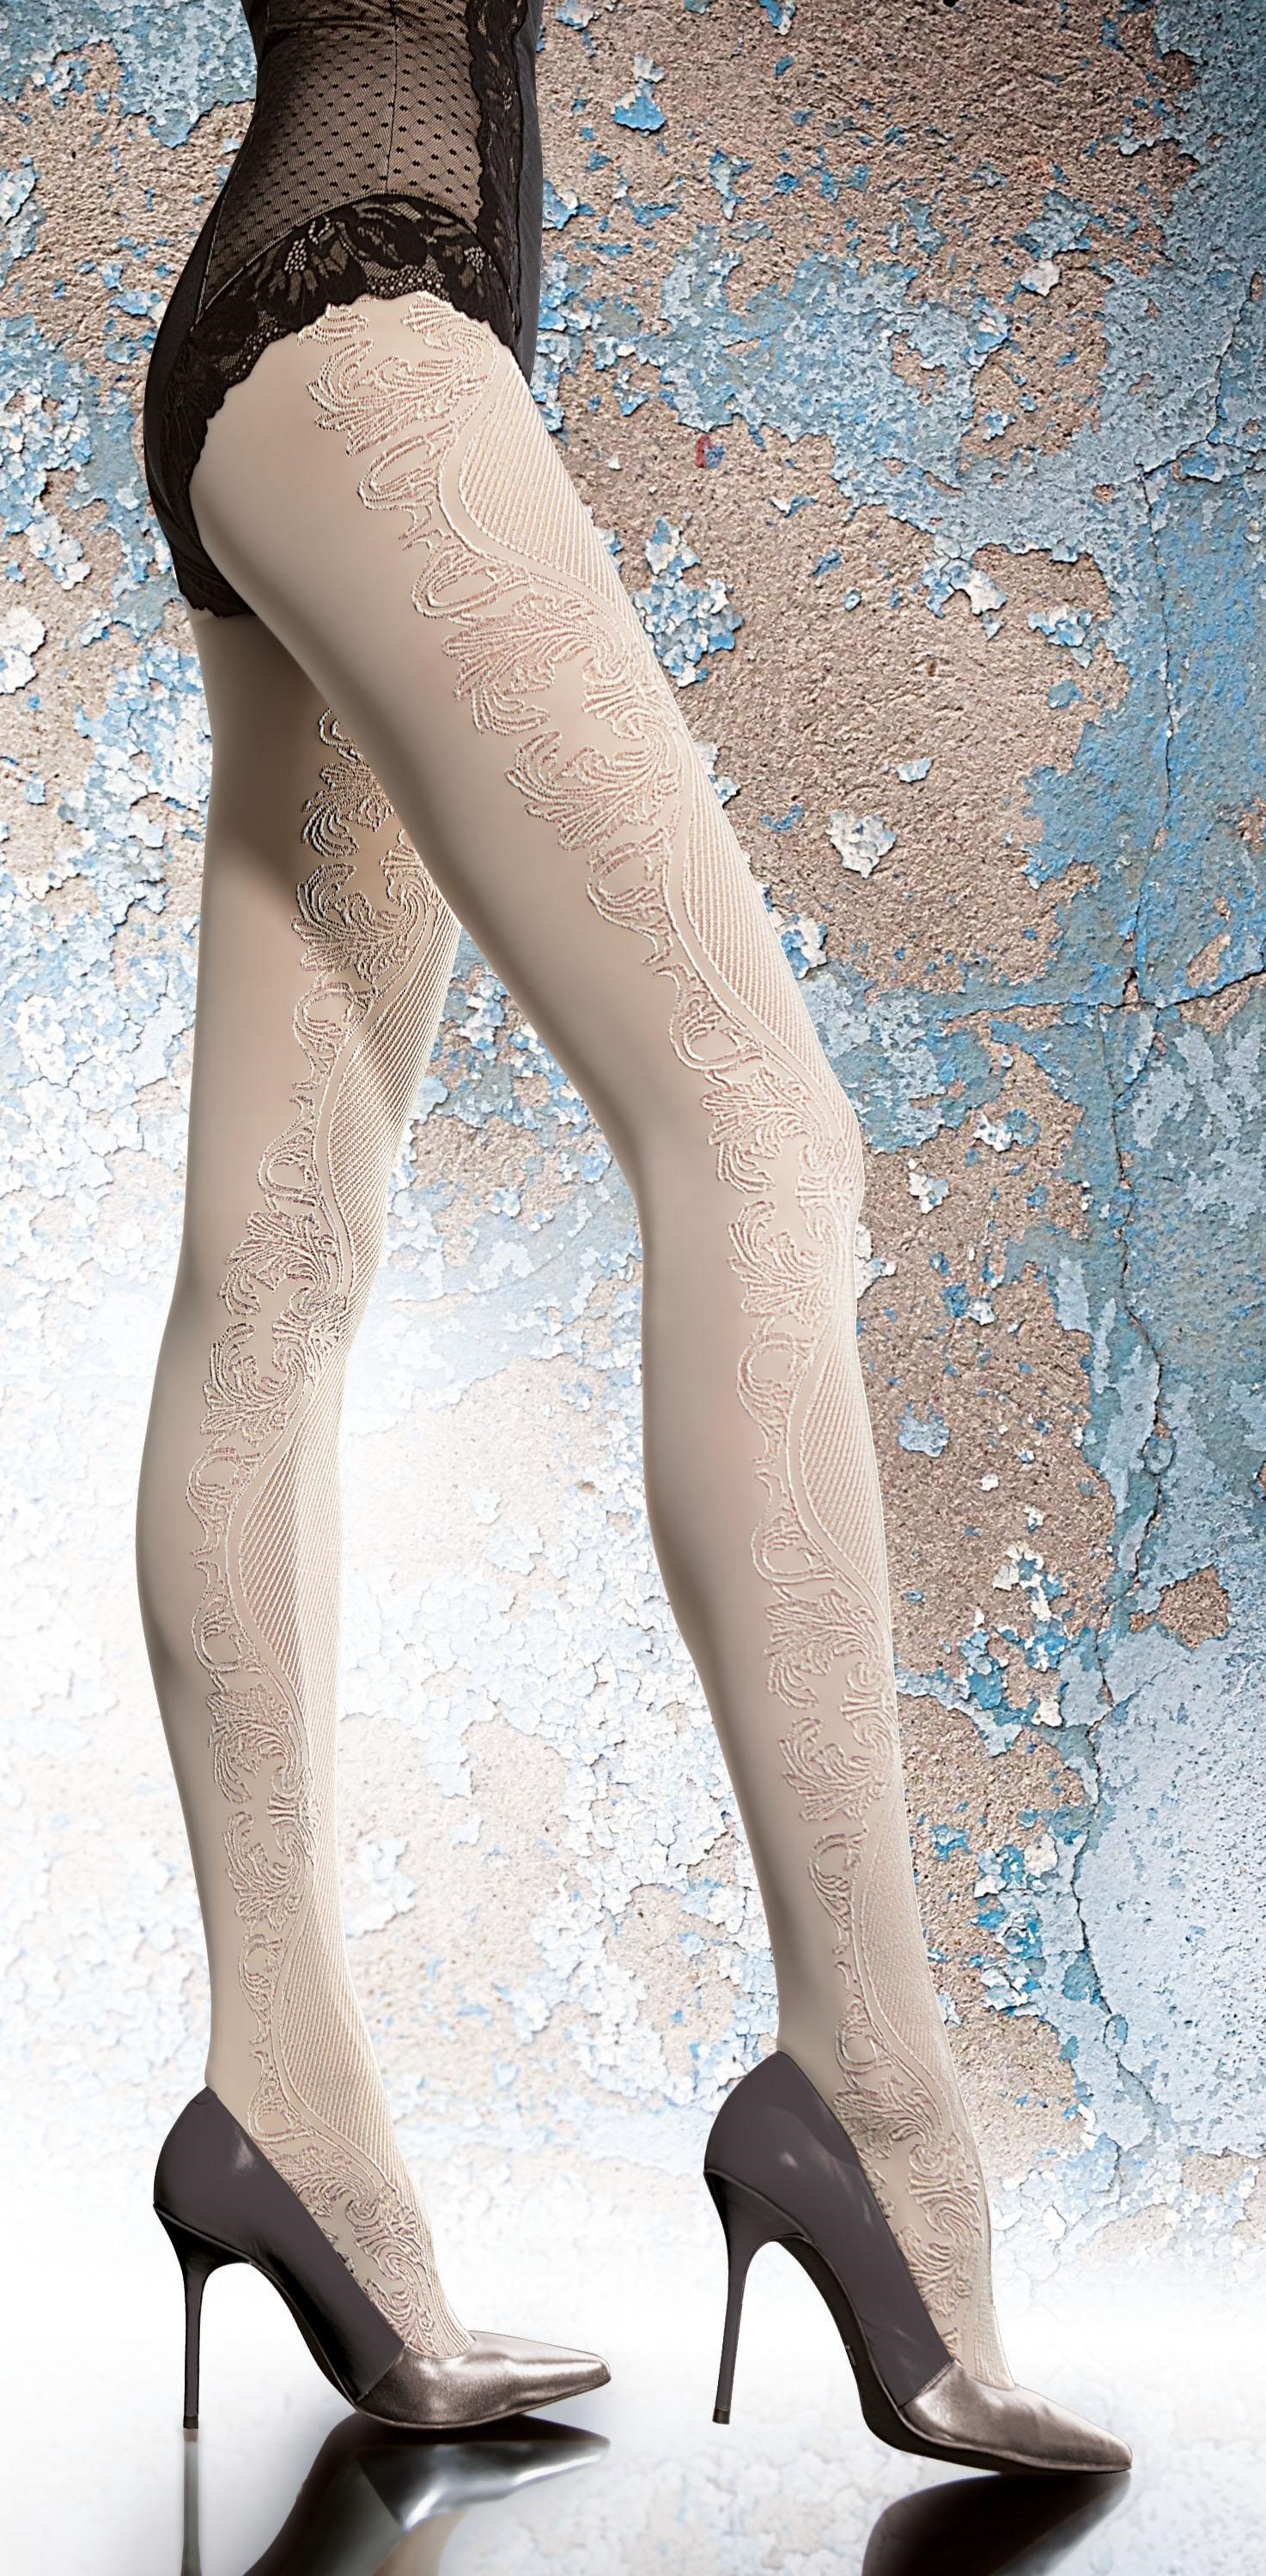 Fiore: Delicious Creme Brulee 3D Microfibre Tights SOLD OUT FIO_ARTEMA